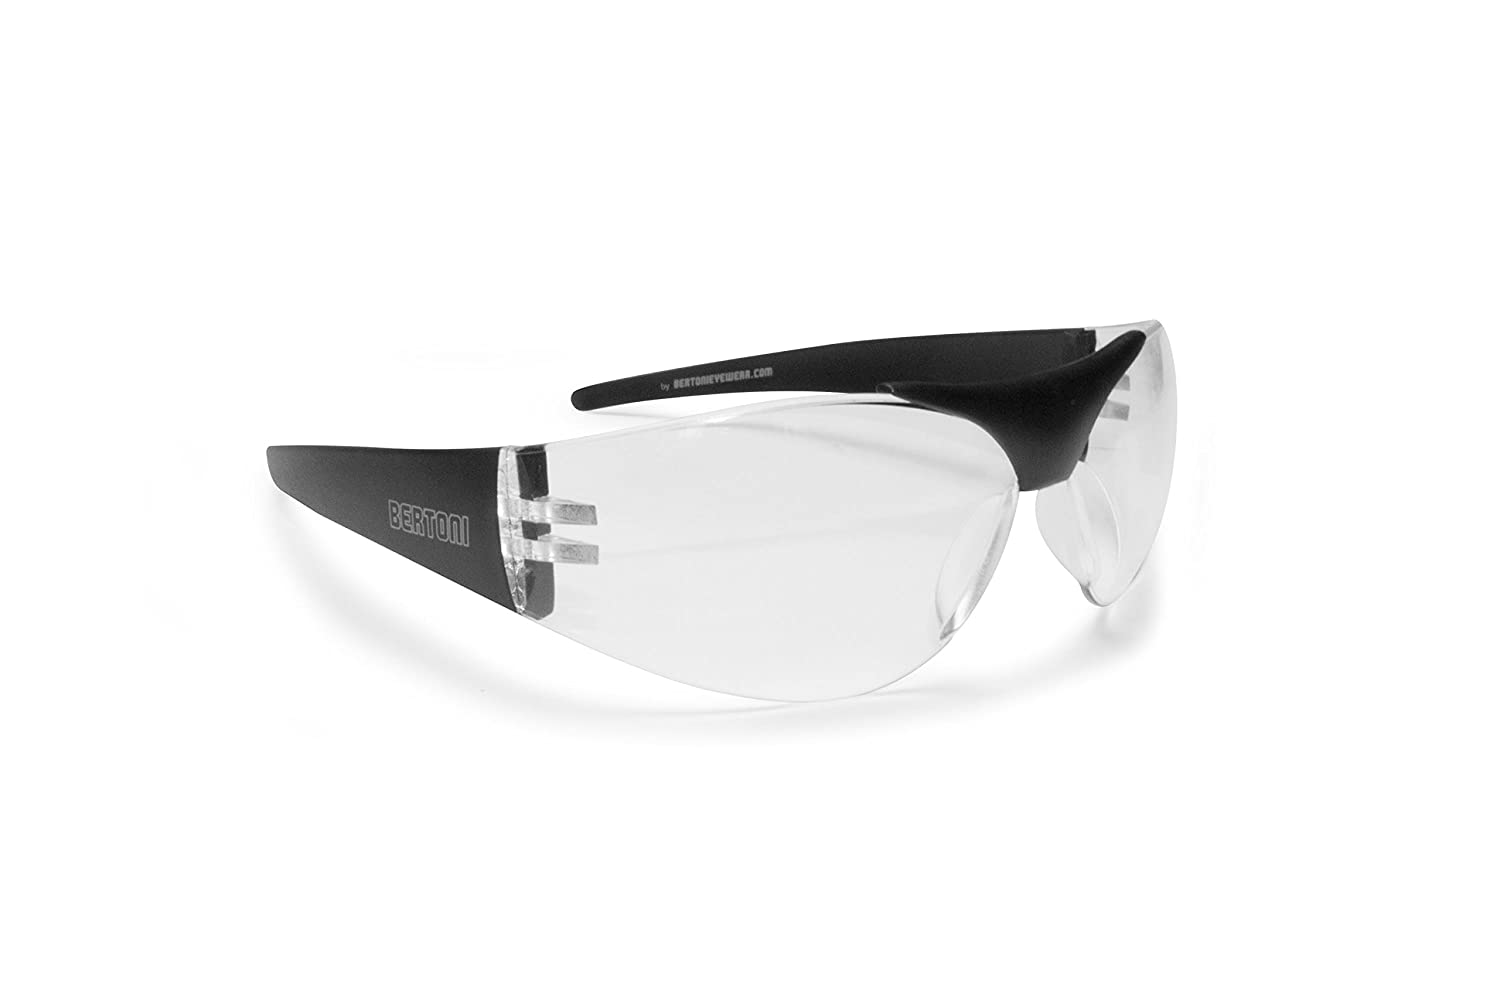 Bertoni Motorcycle Glasses - Windstopper Antifog Anti-UV Lens - Straight Arms for Helmets - AF153 Italy (Dark Lens) Bertoni iwear Italy AF153R1